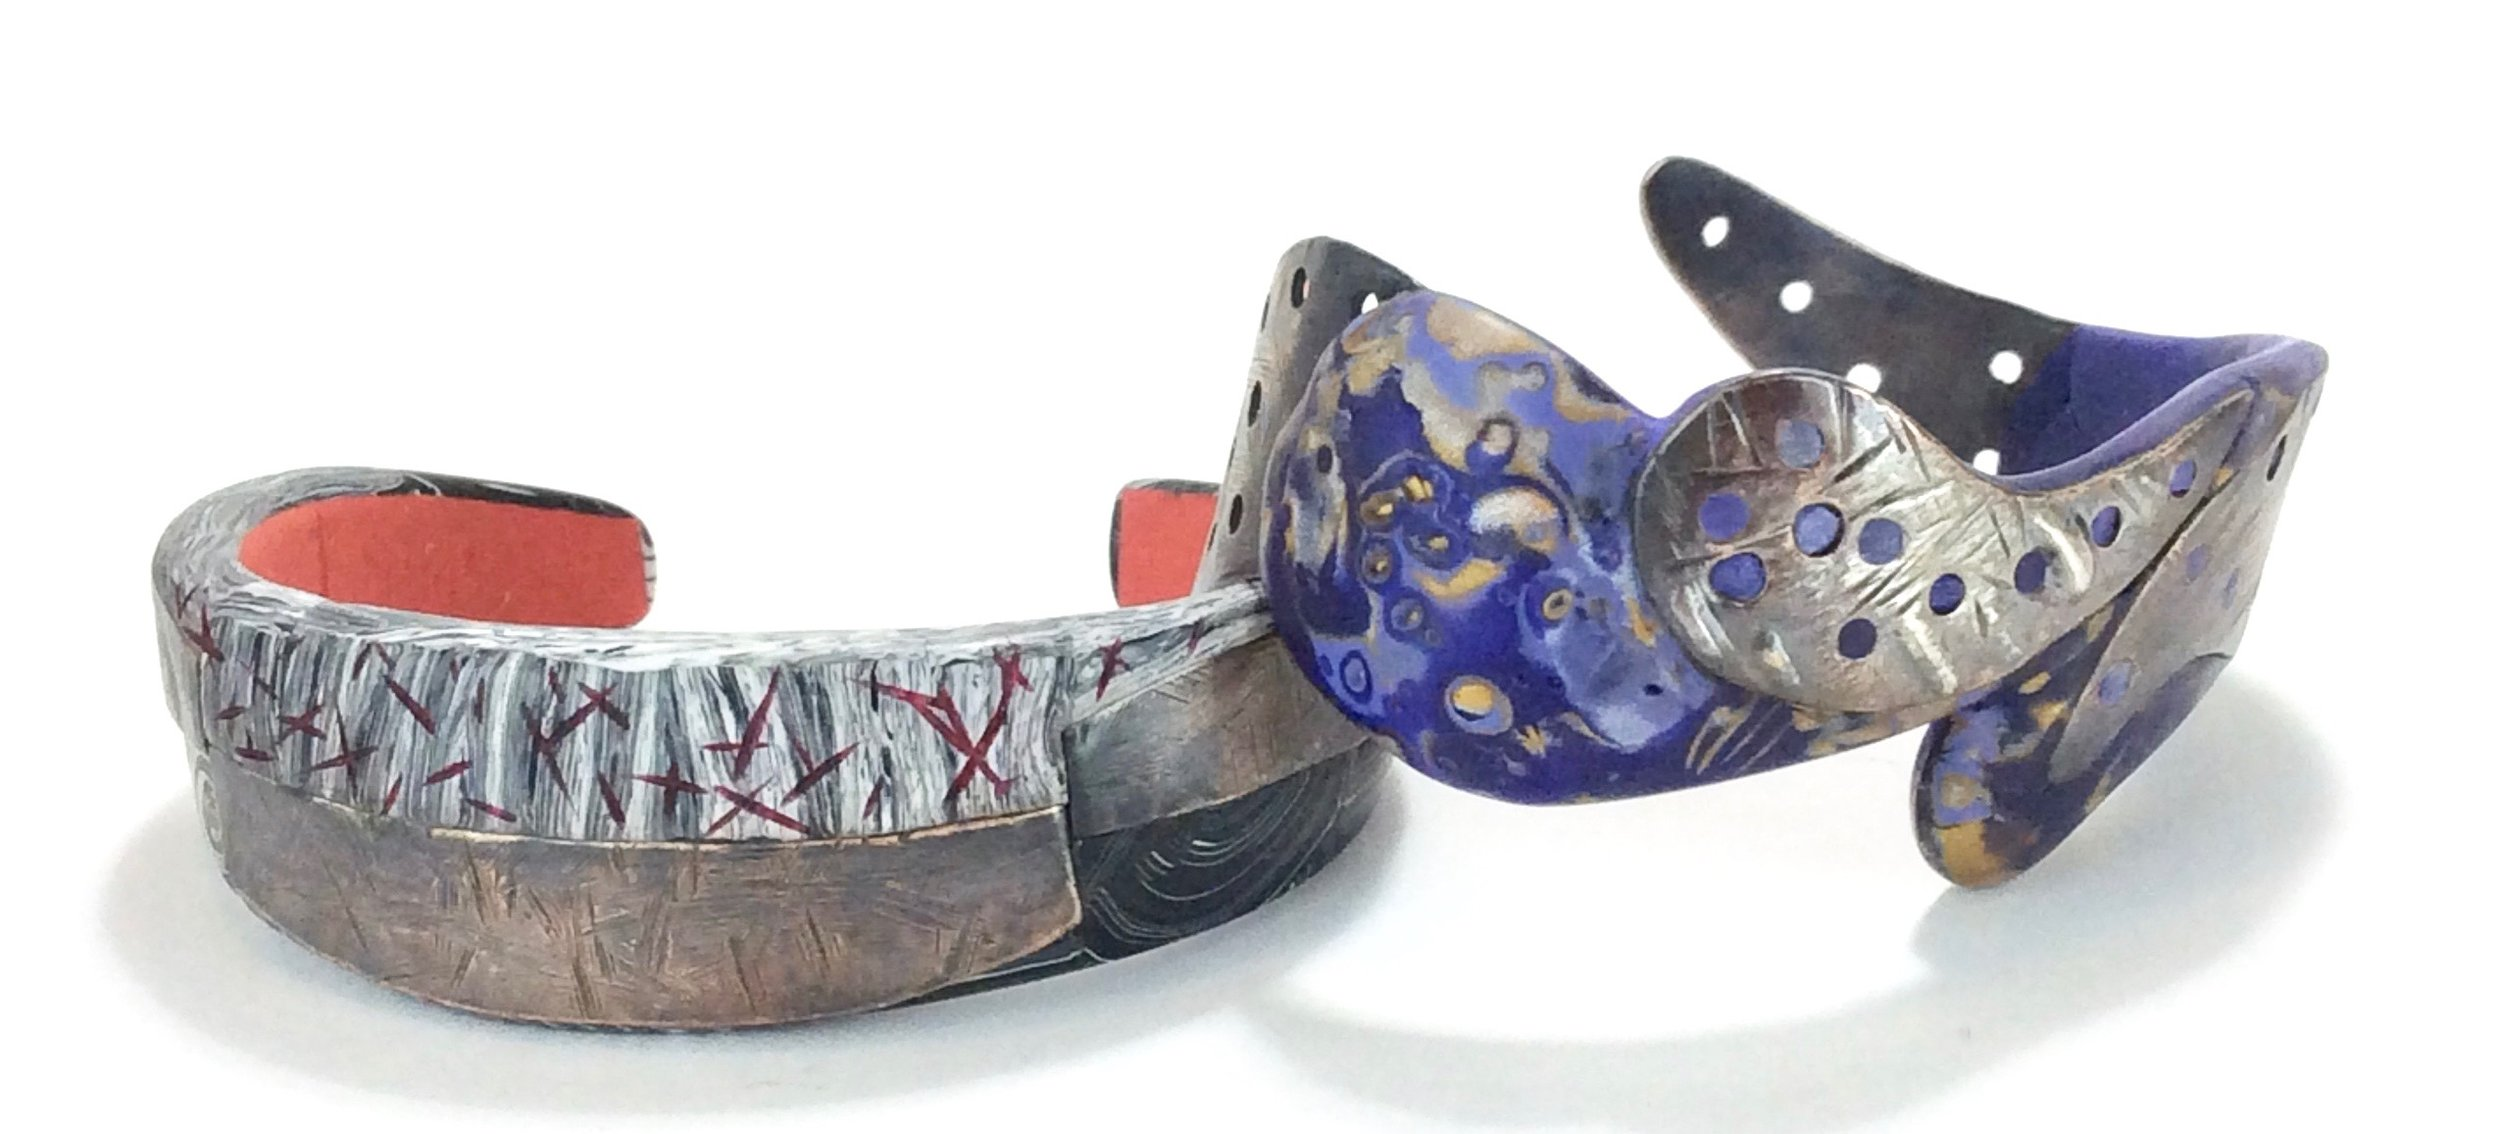 "Metal and Bronze cuff bracelets-2018   polymer clay millefiori marquetry, Bronze , acrylic paint, apoxy clay and wire core  1 ""- 2""  w x 8.5 (9) circumference x .175 D"